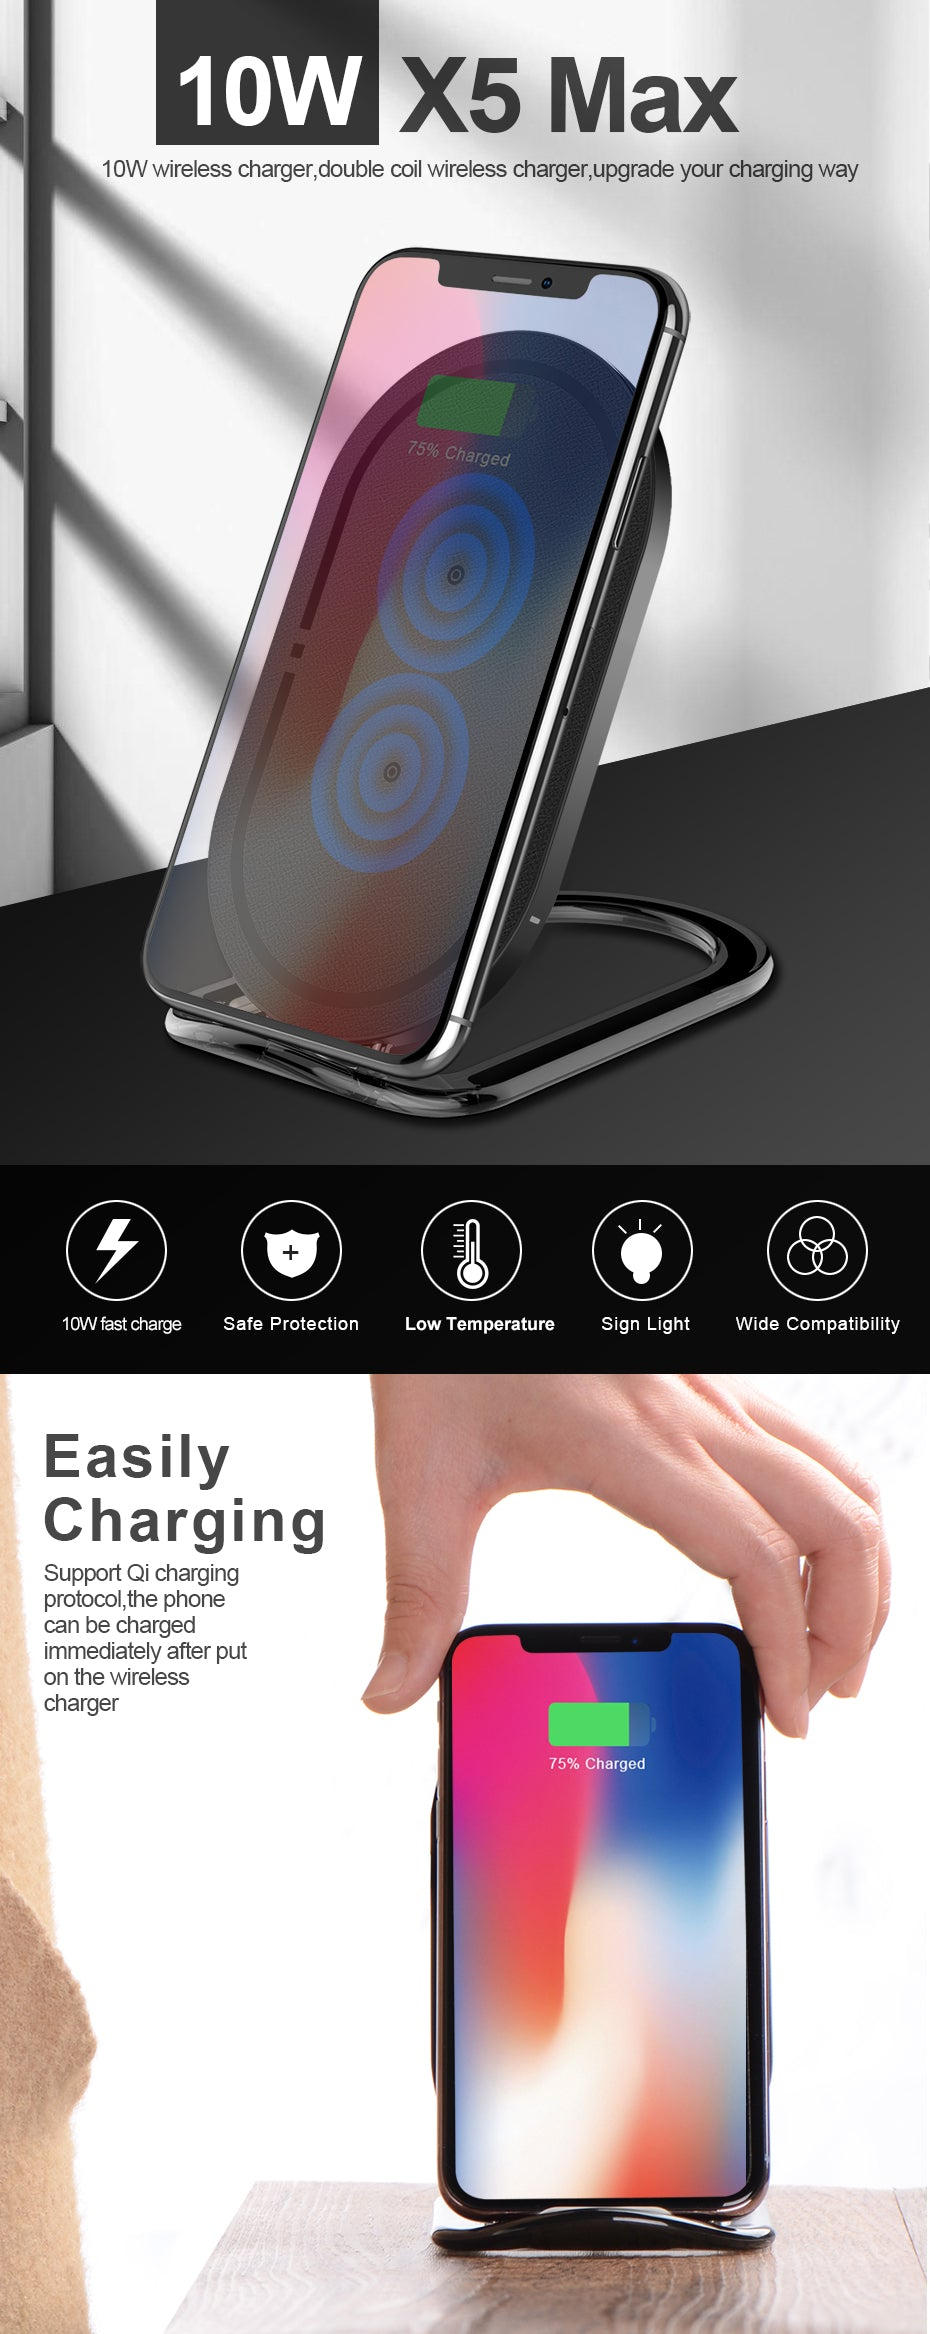 Wireless Charger For Samsung Galaxy S8 S7 Edge Note 8 ,For iPhone X 8 8 Plus